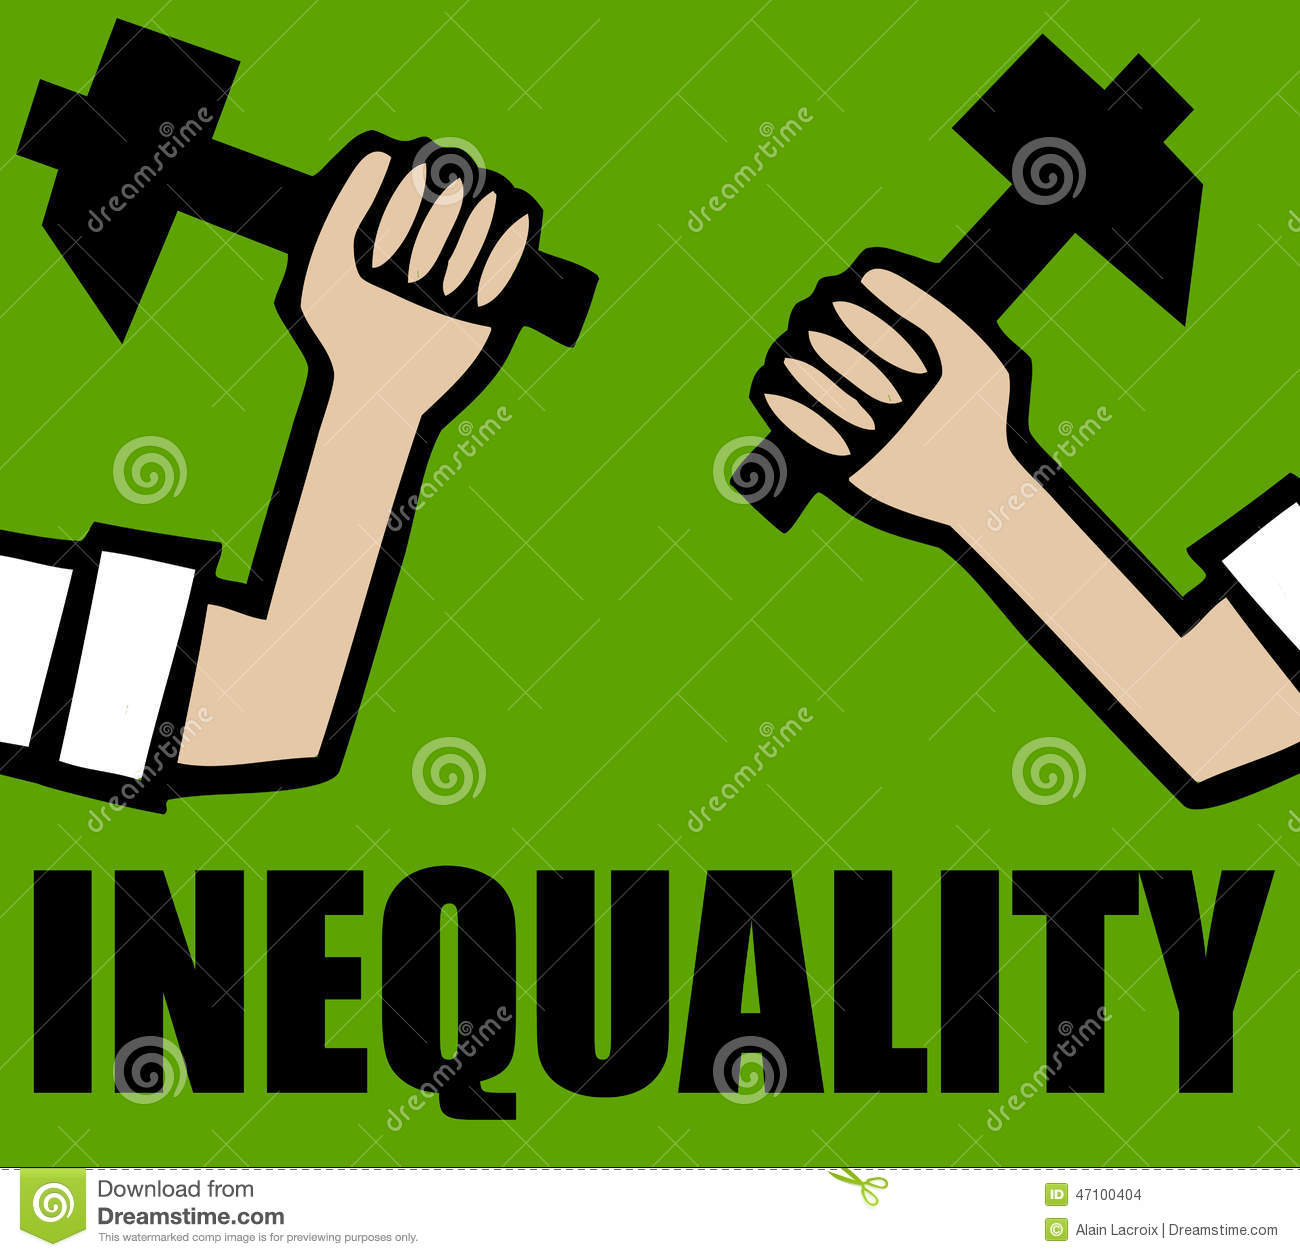 equality and inequality in society Social inequality is characterized by the existence of unequal opportunities and rewards for different social positions or statuses within a group or society it contains structured and recurrent patterns of unequal distributions of goods, wealth, opportunities, rewards, and punishments racism, for .